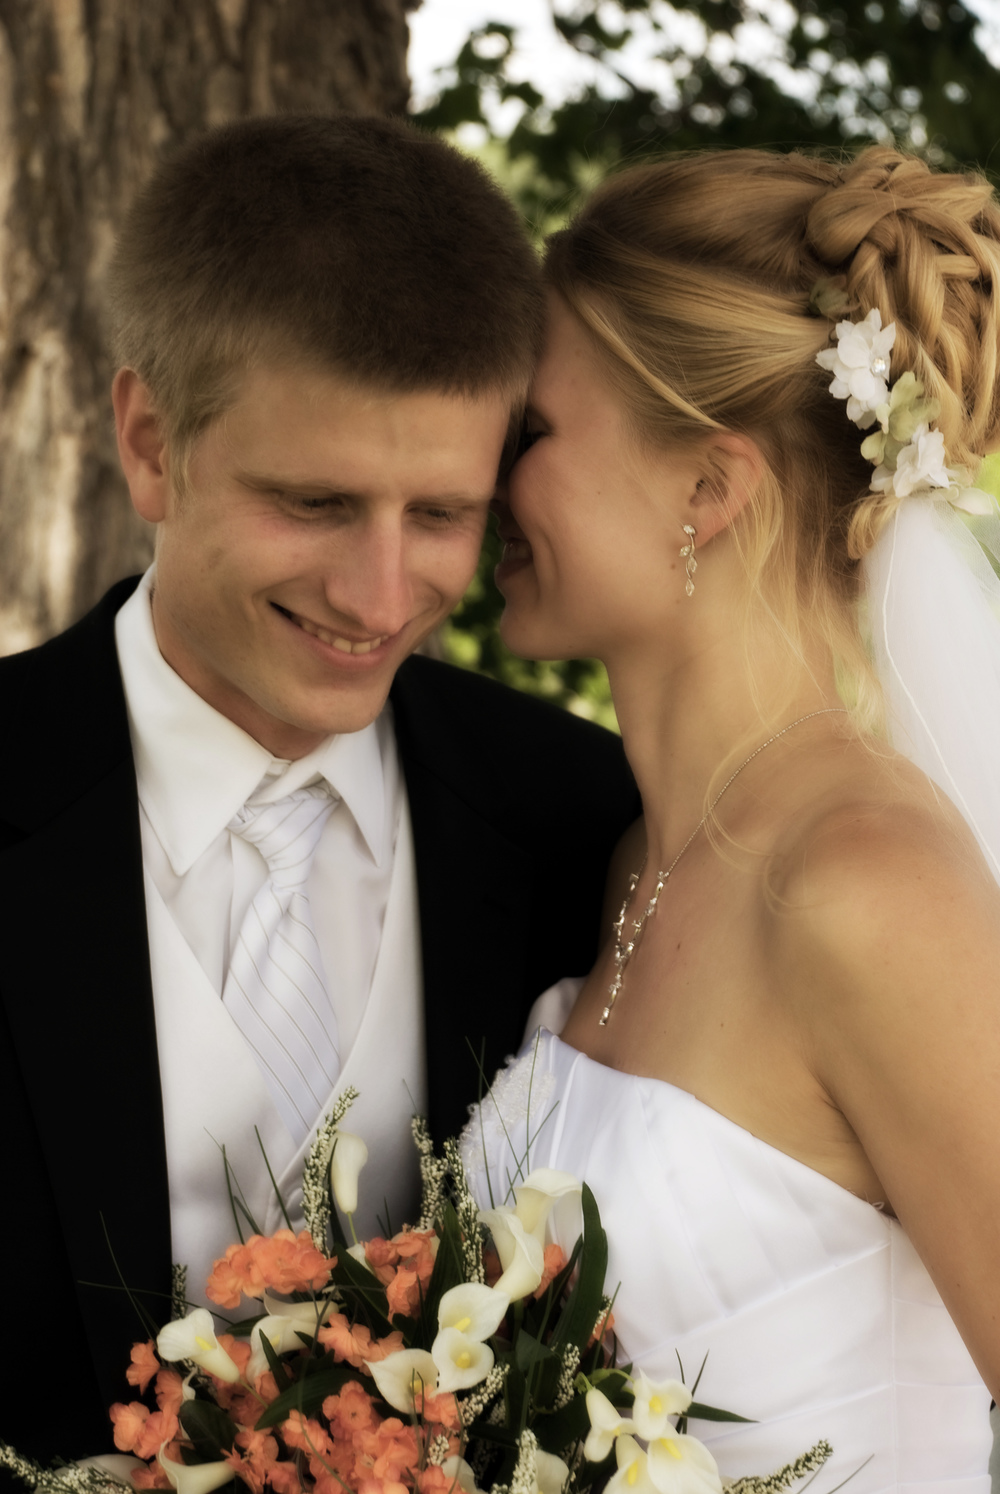 Laursen_wedding0146edit.jpg